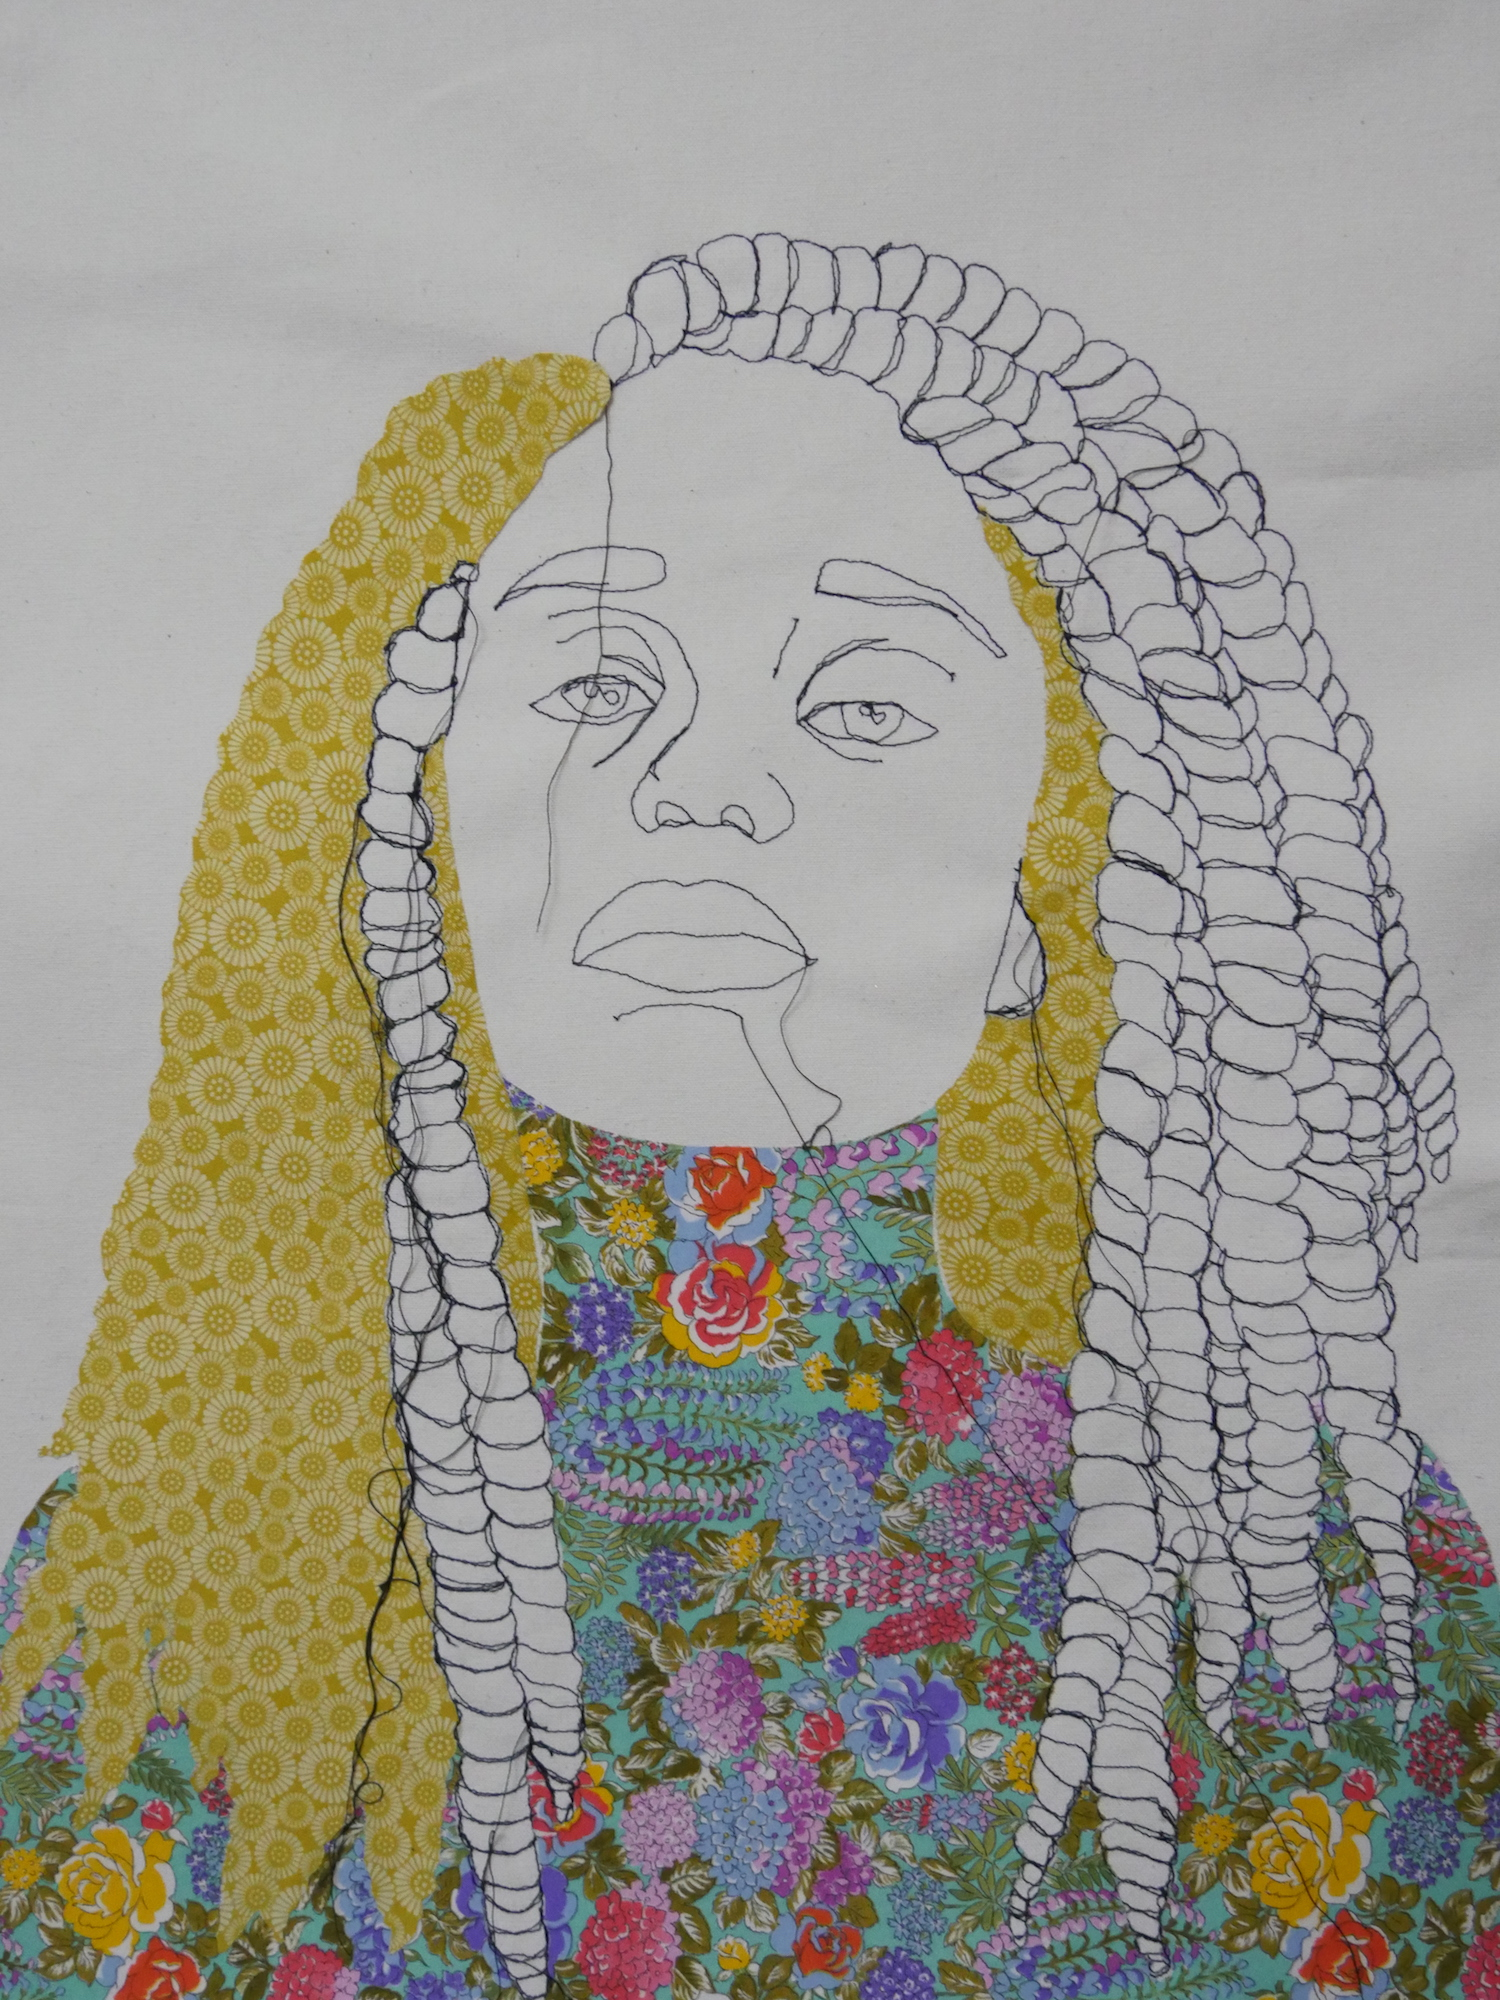 """Detail of """"My Hands are Clean"""" (2017?) series by Giovanna Swaby. Portraiture made using thread and fabric on canvas, displayed in """"Die Textile"""" in Schmallenberg, Germany. Swaby exhibited alongside artists Josef Albers, Joseph Beuys, and Pablo Picasso in the same festival."""